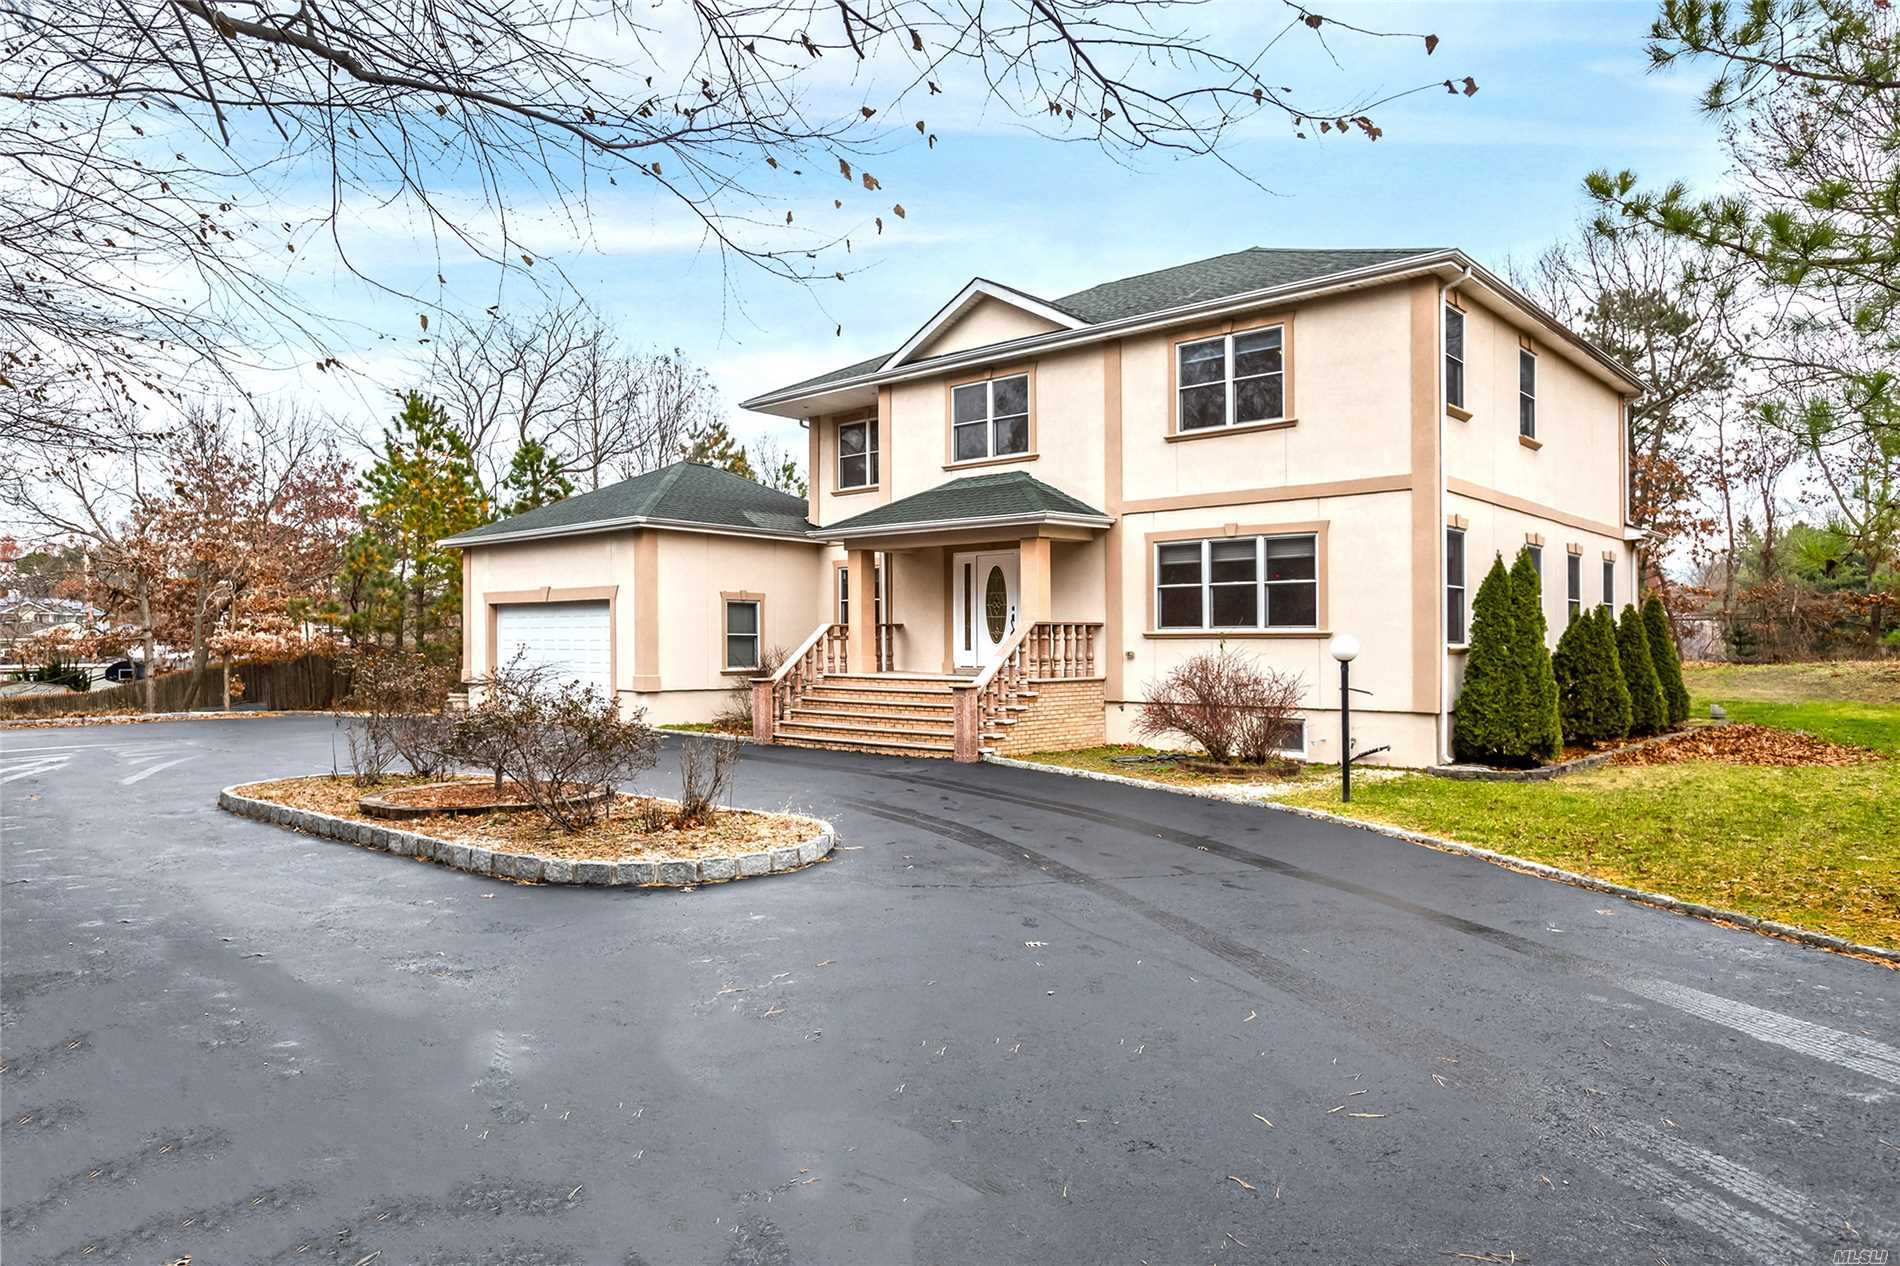 3712 Square Foot Colonial Tucked Away In A Private Area Of Lake Ronkonkoma. 4 Bedrooms, 3 Full Baths, Beautiful Hardwood Floors, Crown Molding, Freshly Painted, Large Rooms Through-Out. Gas Heating, Central Air, Large 2 Car Garage., Finished Basement With Outside Entrance. Sachem Schools, Close To Lie & Lirr